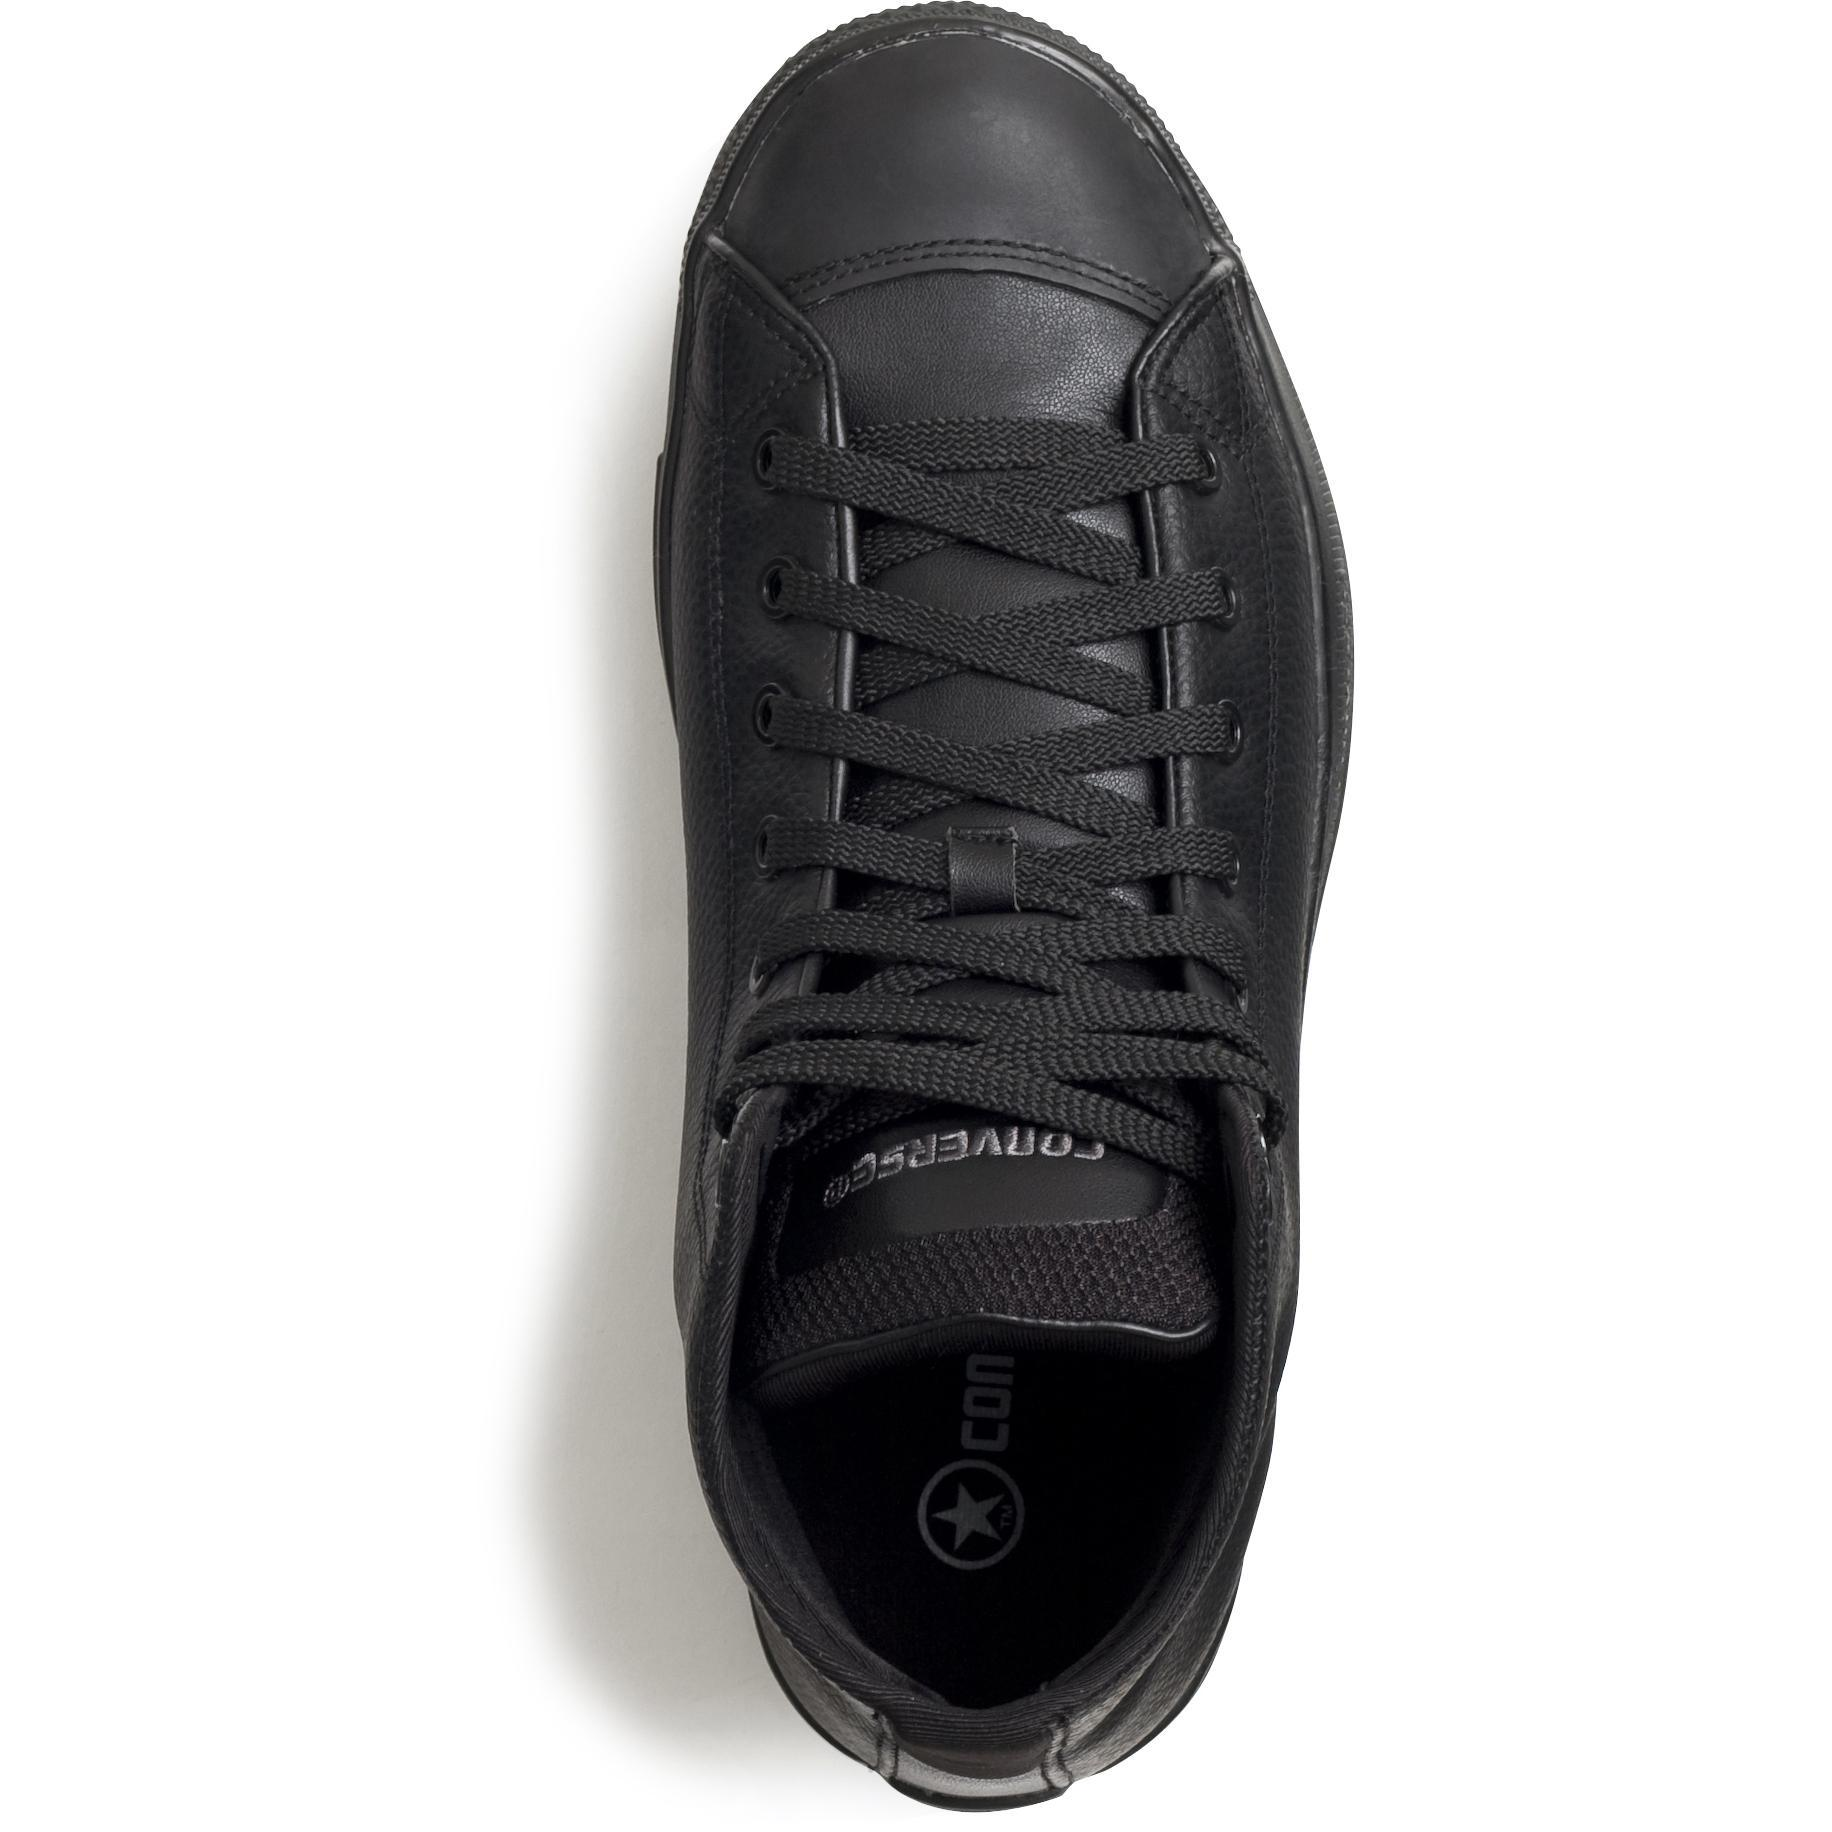 converse slip resistant hi top lehigh safety shoes